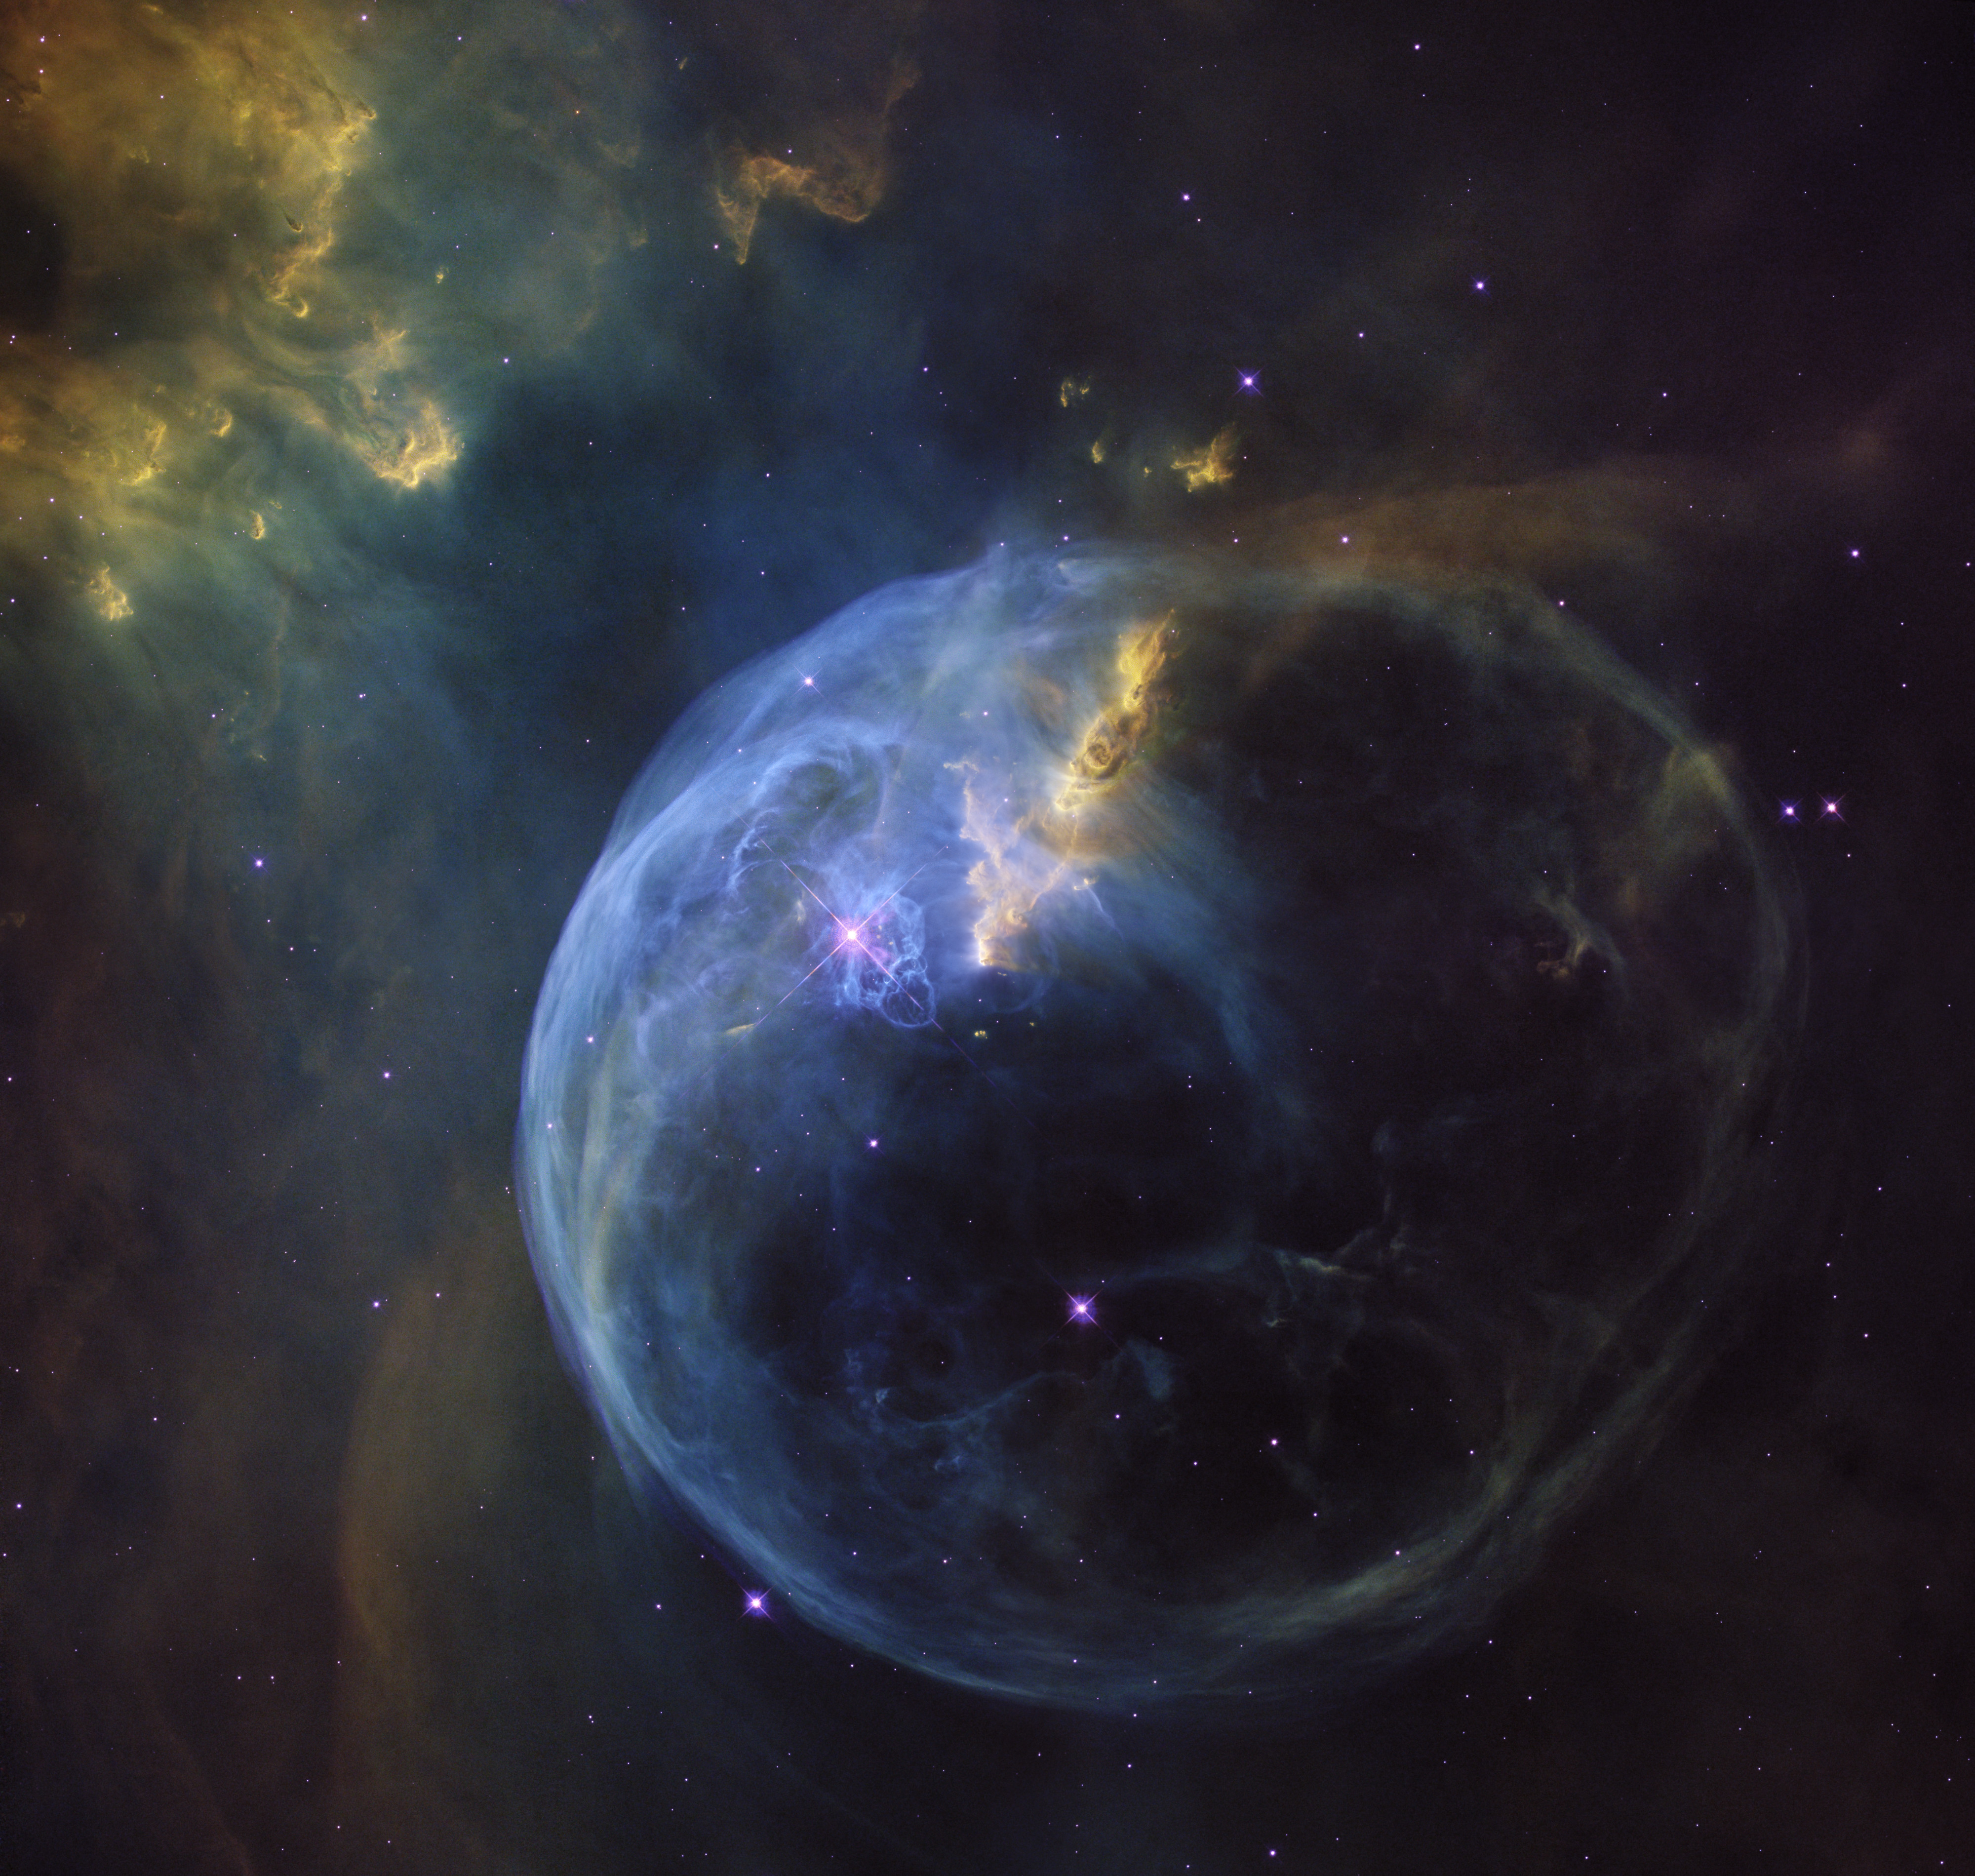 Hubble view of Bubble Nebula